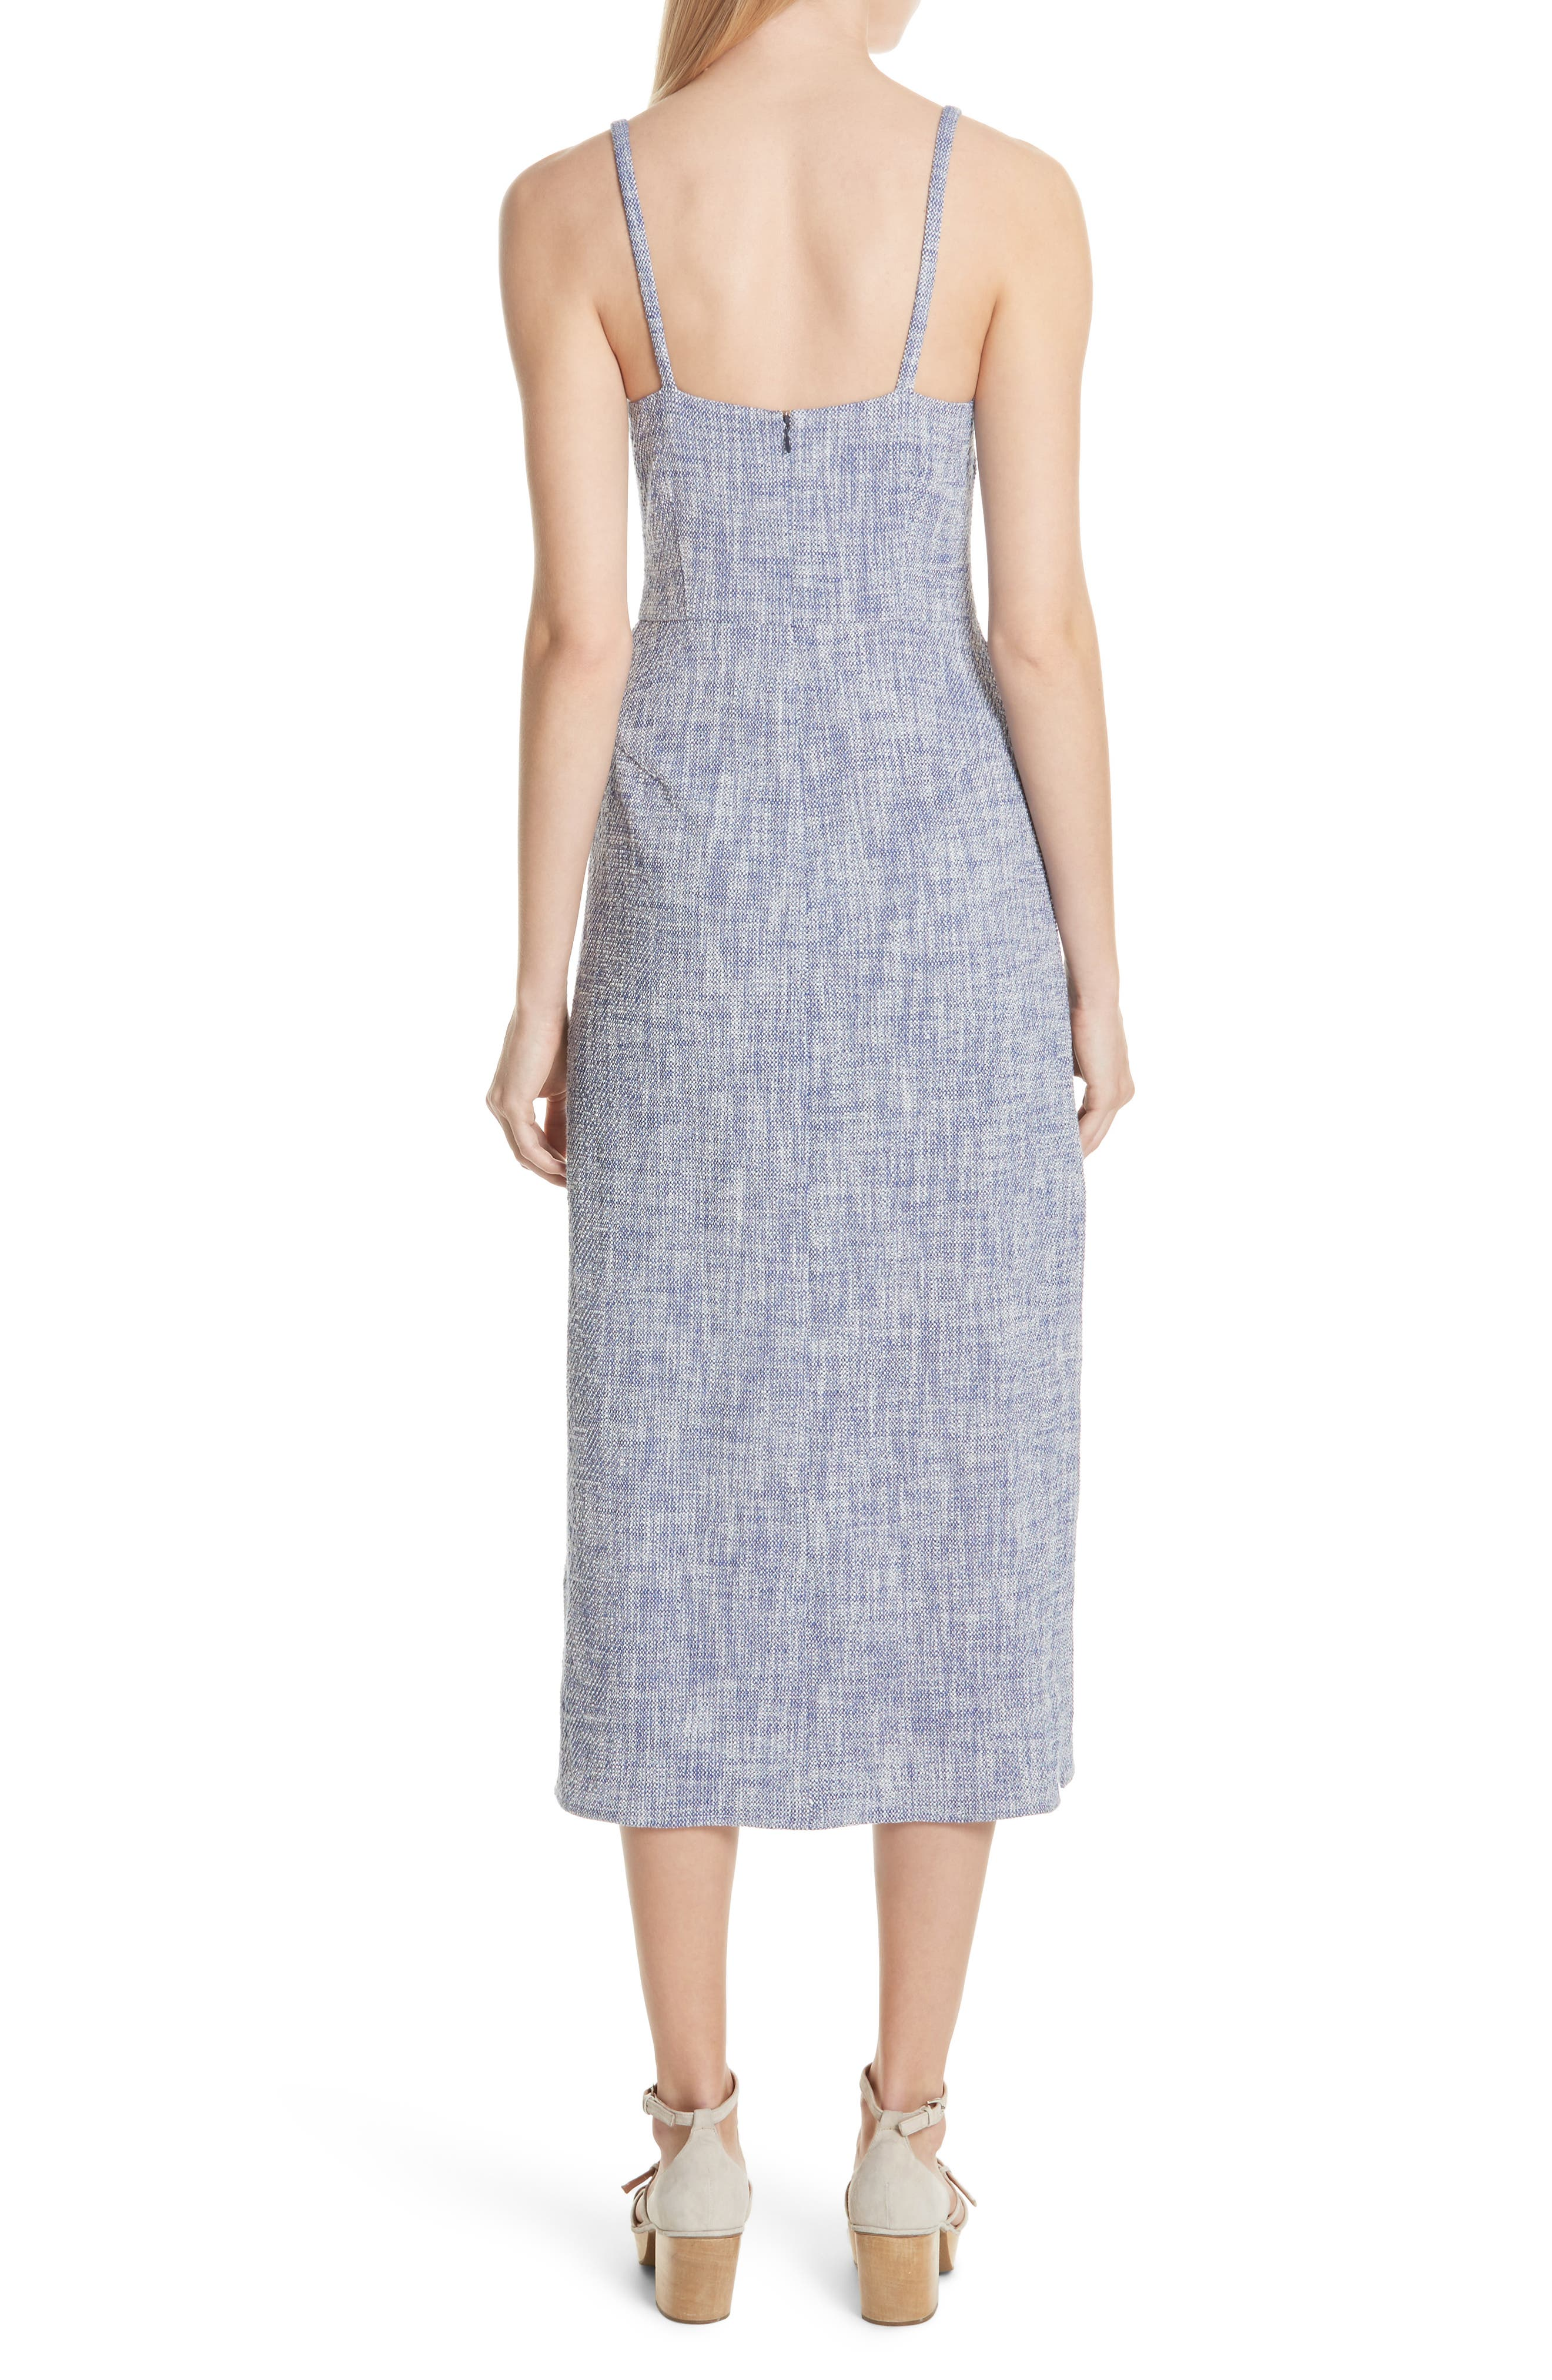 Agitator Midi Dress,                             Alternate thumbnail 2, color,                             BLUE